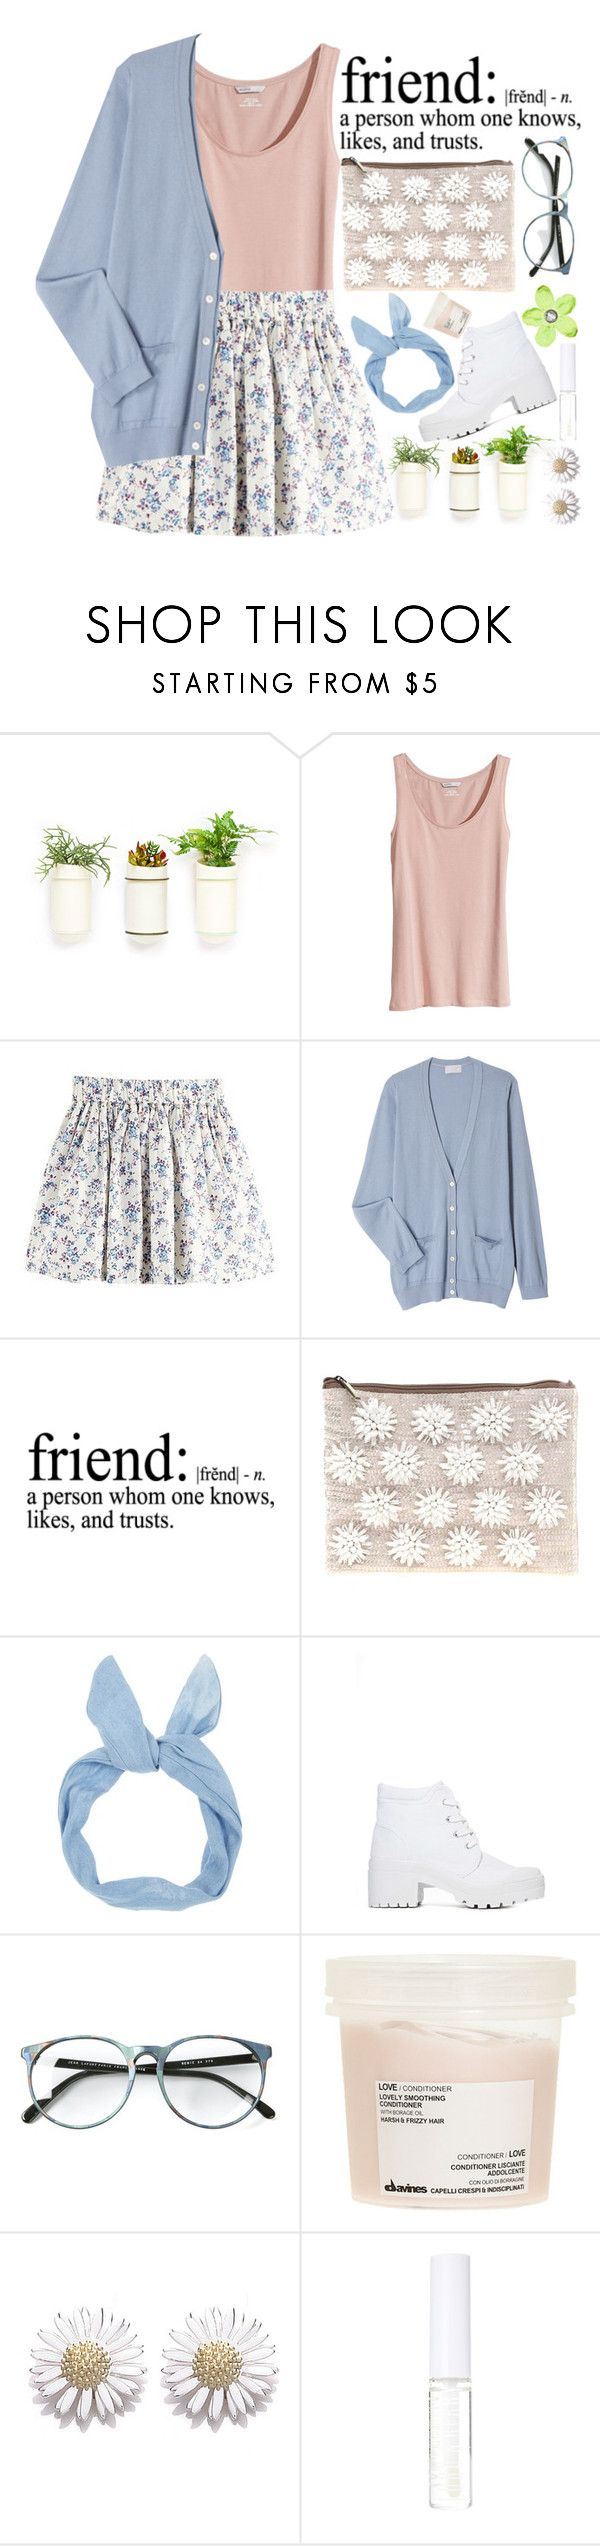 """""""Friend"""" by missixtyme ❤ liked on Polyvore featuring H&M, Margaret Howell, WALL, ASOS, Dirty Laundry, Davines, Daisy Jewellery, Lord & Berry, Pink and GREEN"""